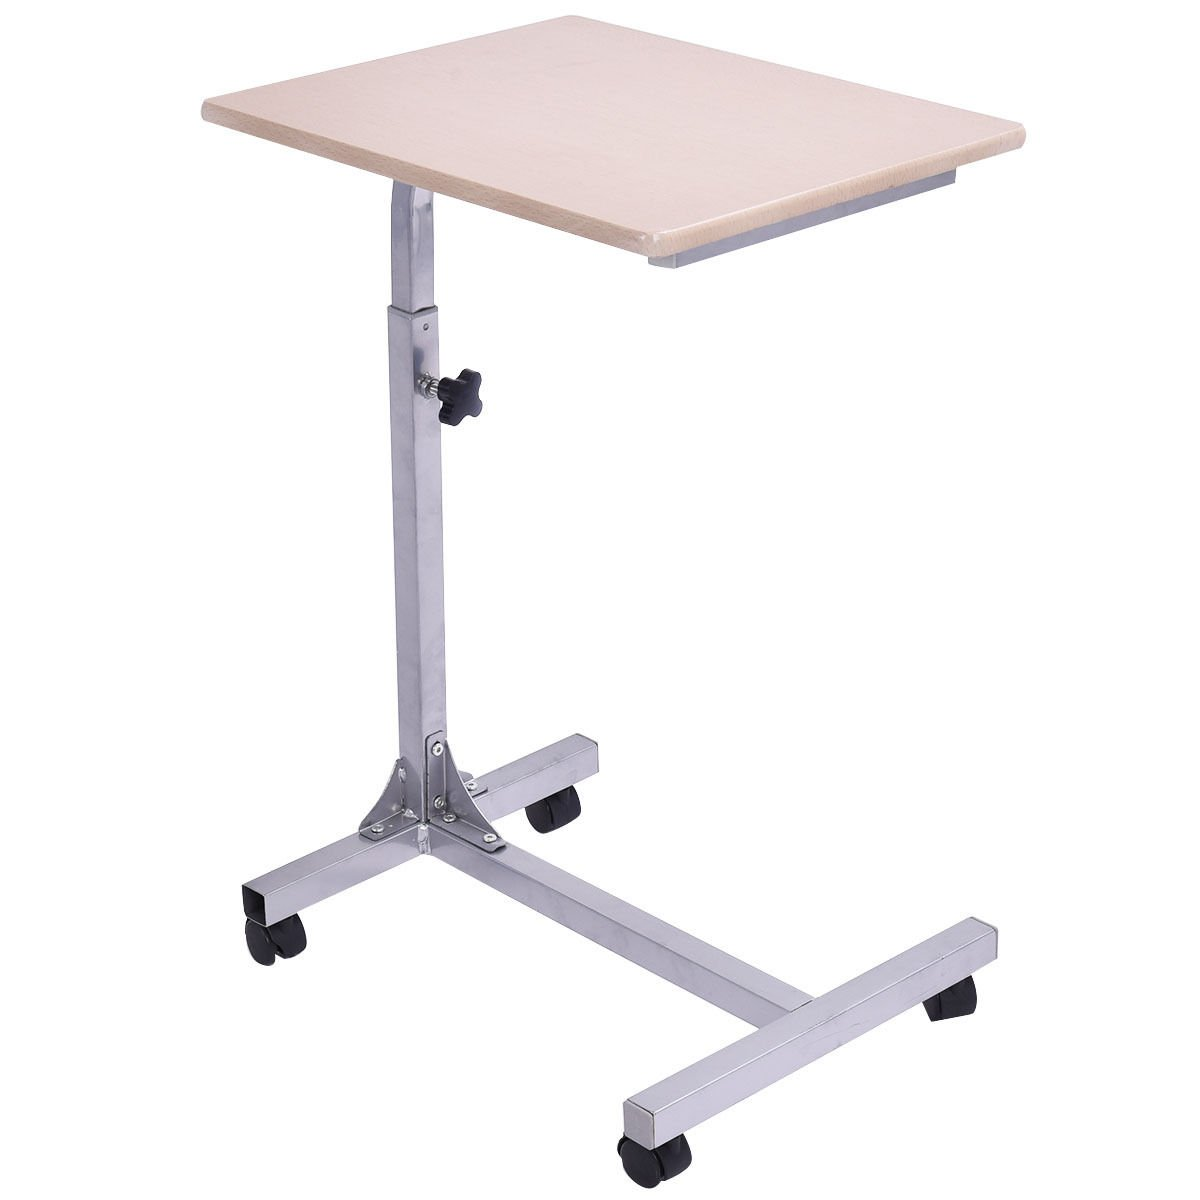 Tangkula Laptop Table Classic Rolling Cart Wooden Top and Metal Frame Home Office Studio Dormitory Snack Table Adjustable Height Over-bed Desk Computer Cart Desk